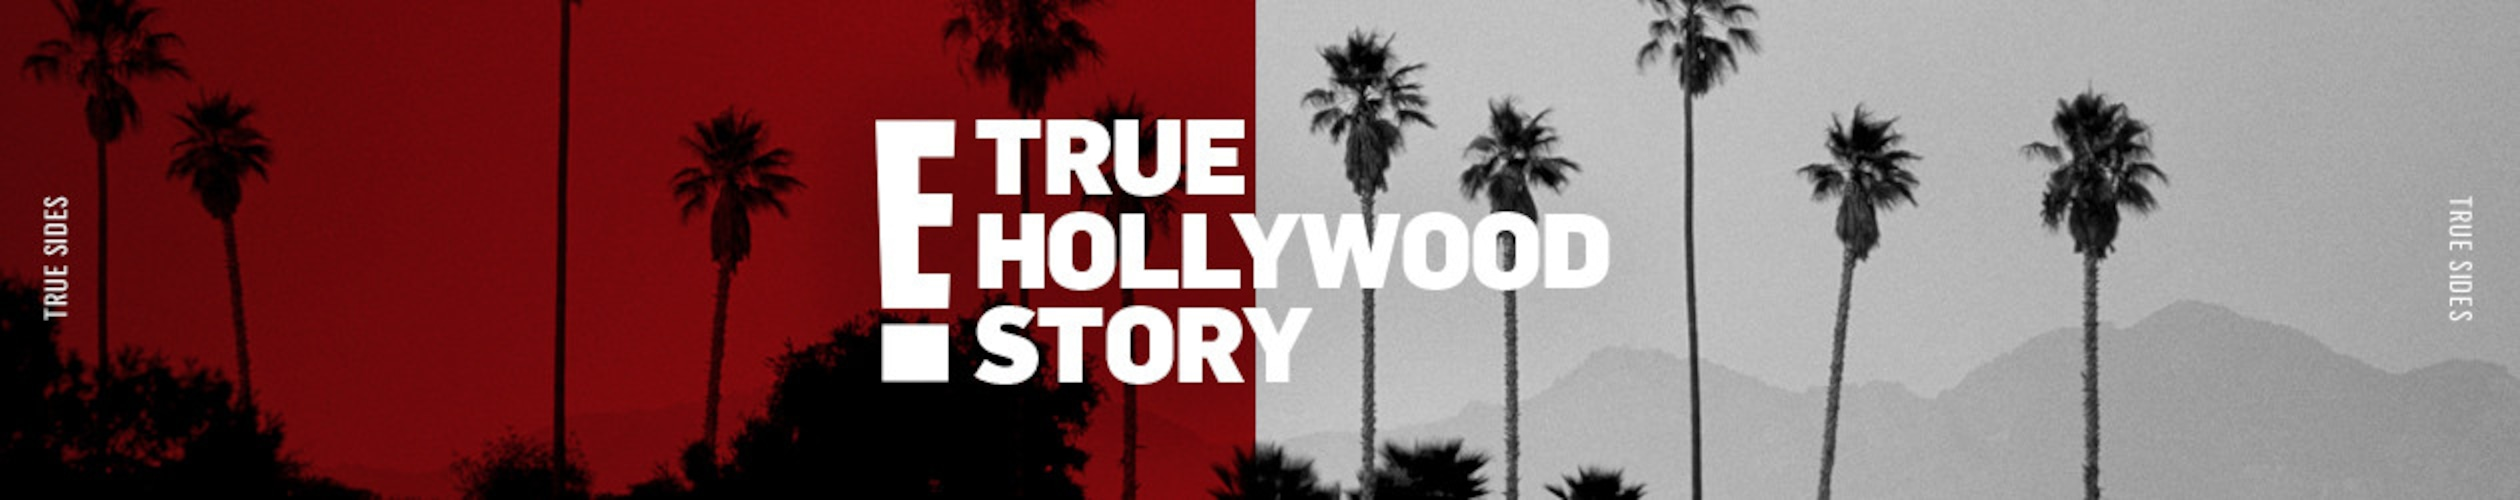 E! True Hollywood Story Temp Show Page Assets